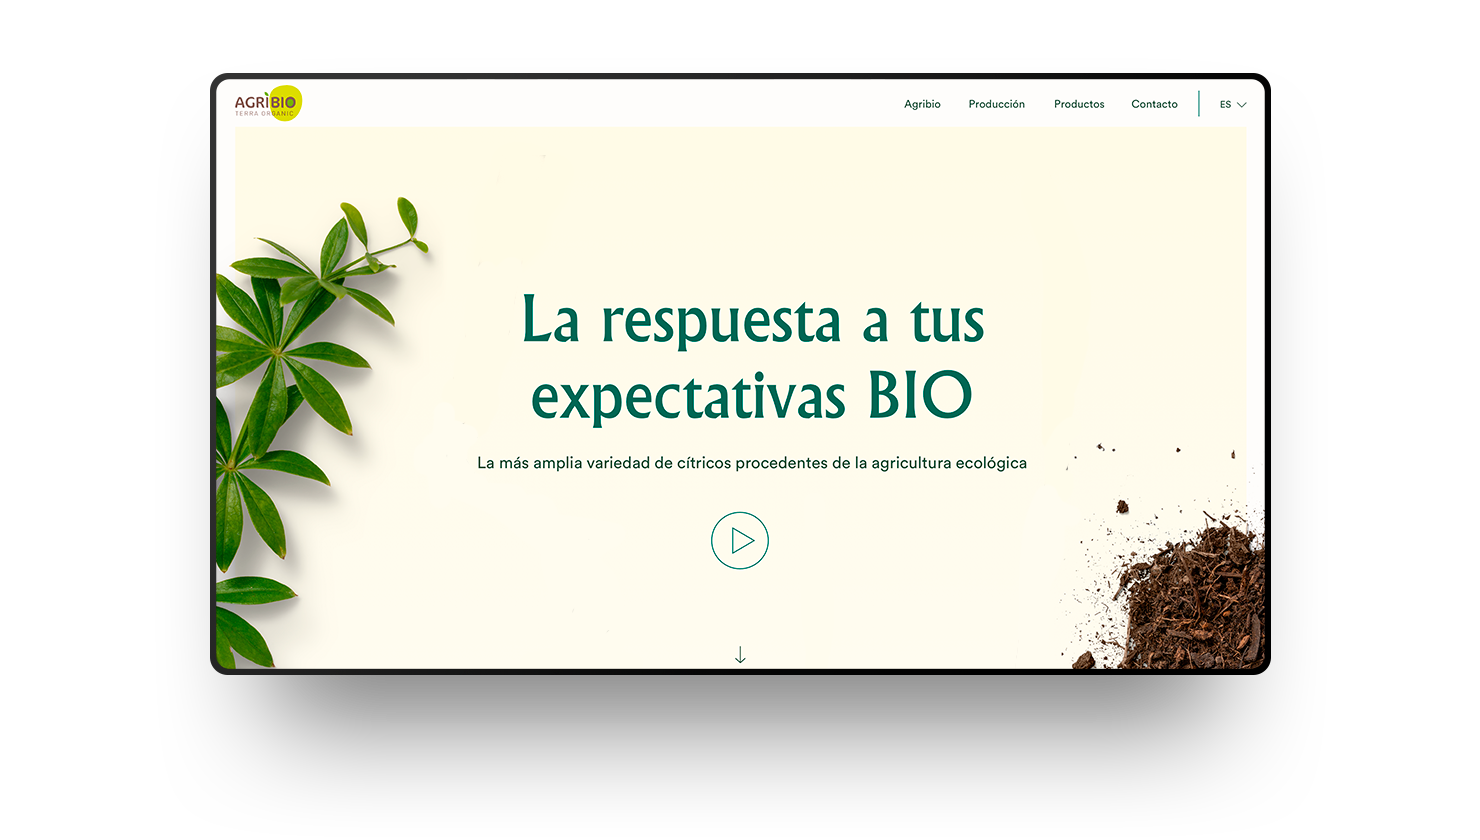 Agribio, a website committed to agroecology and the environment